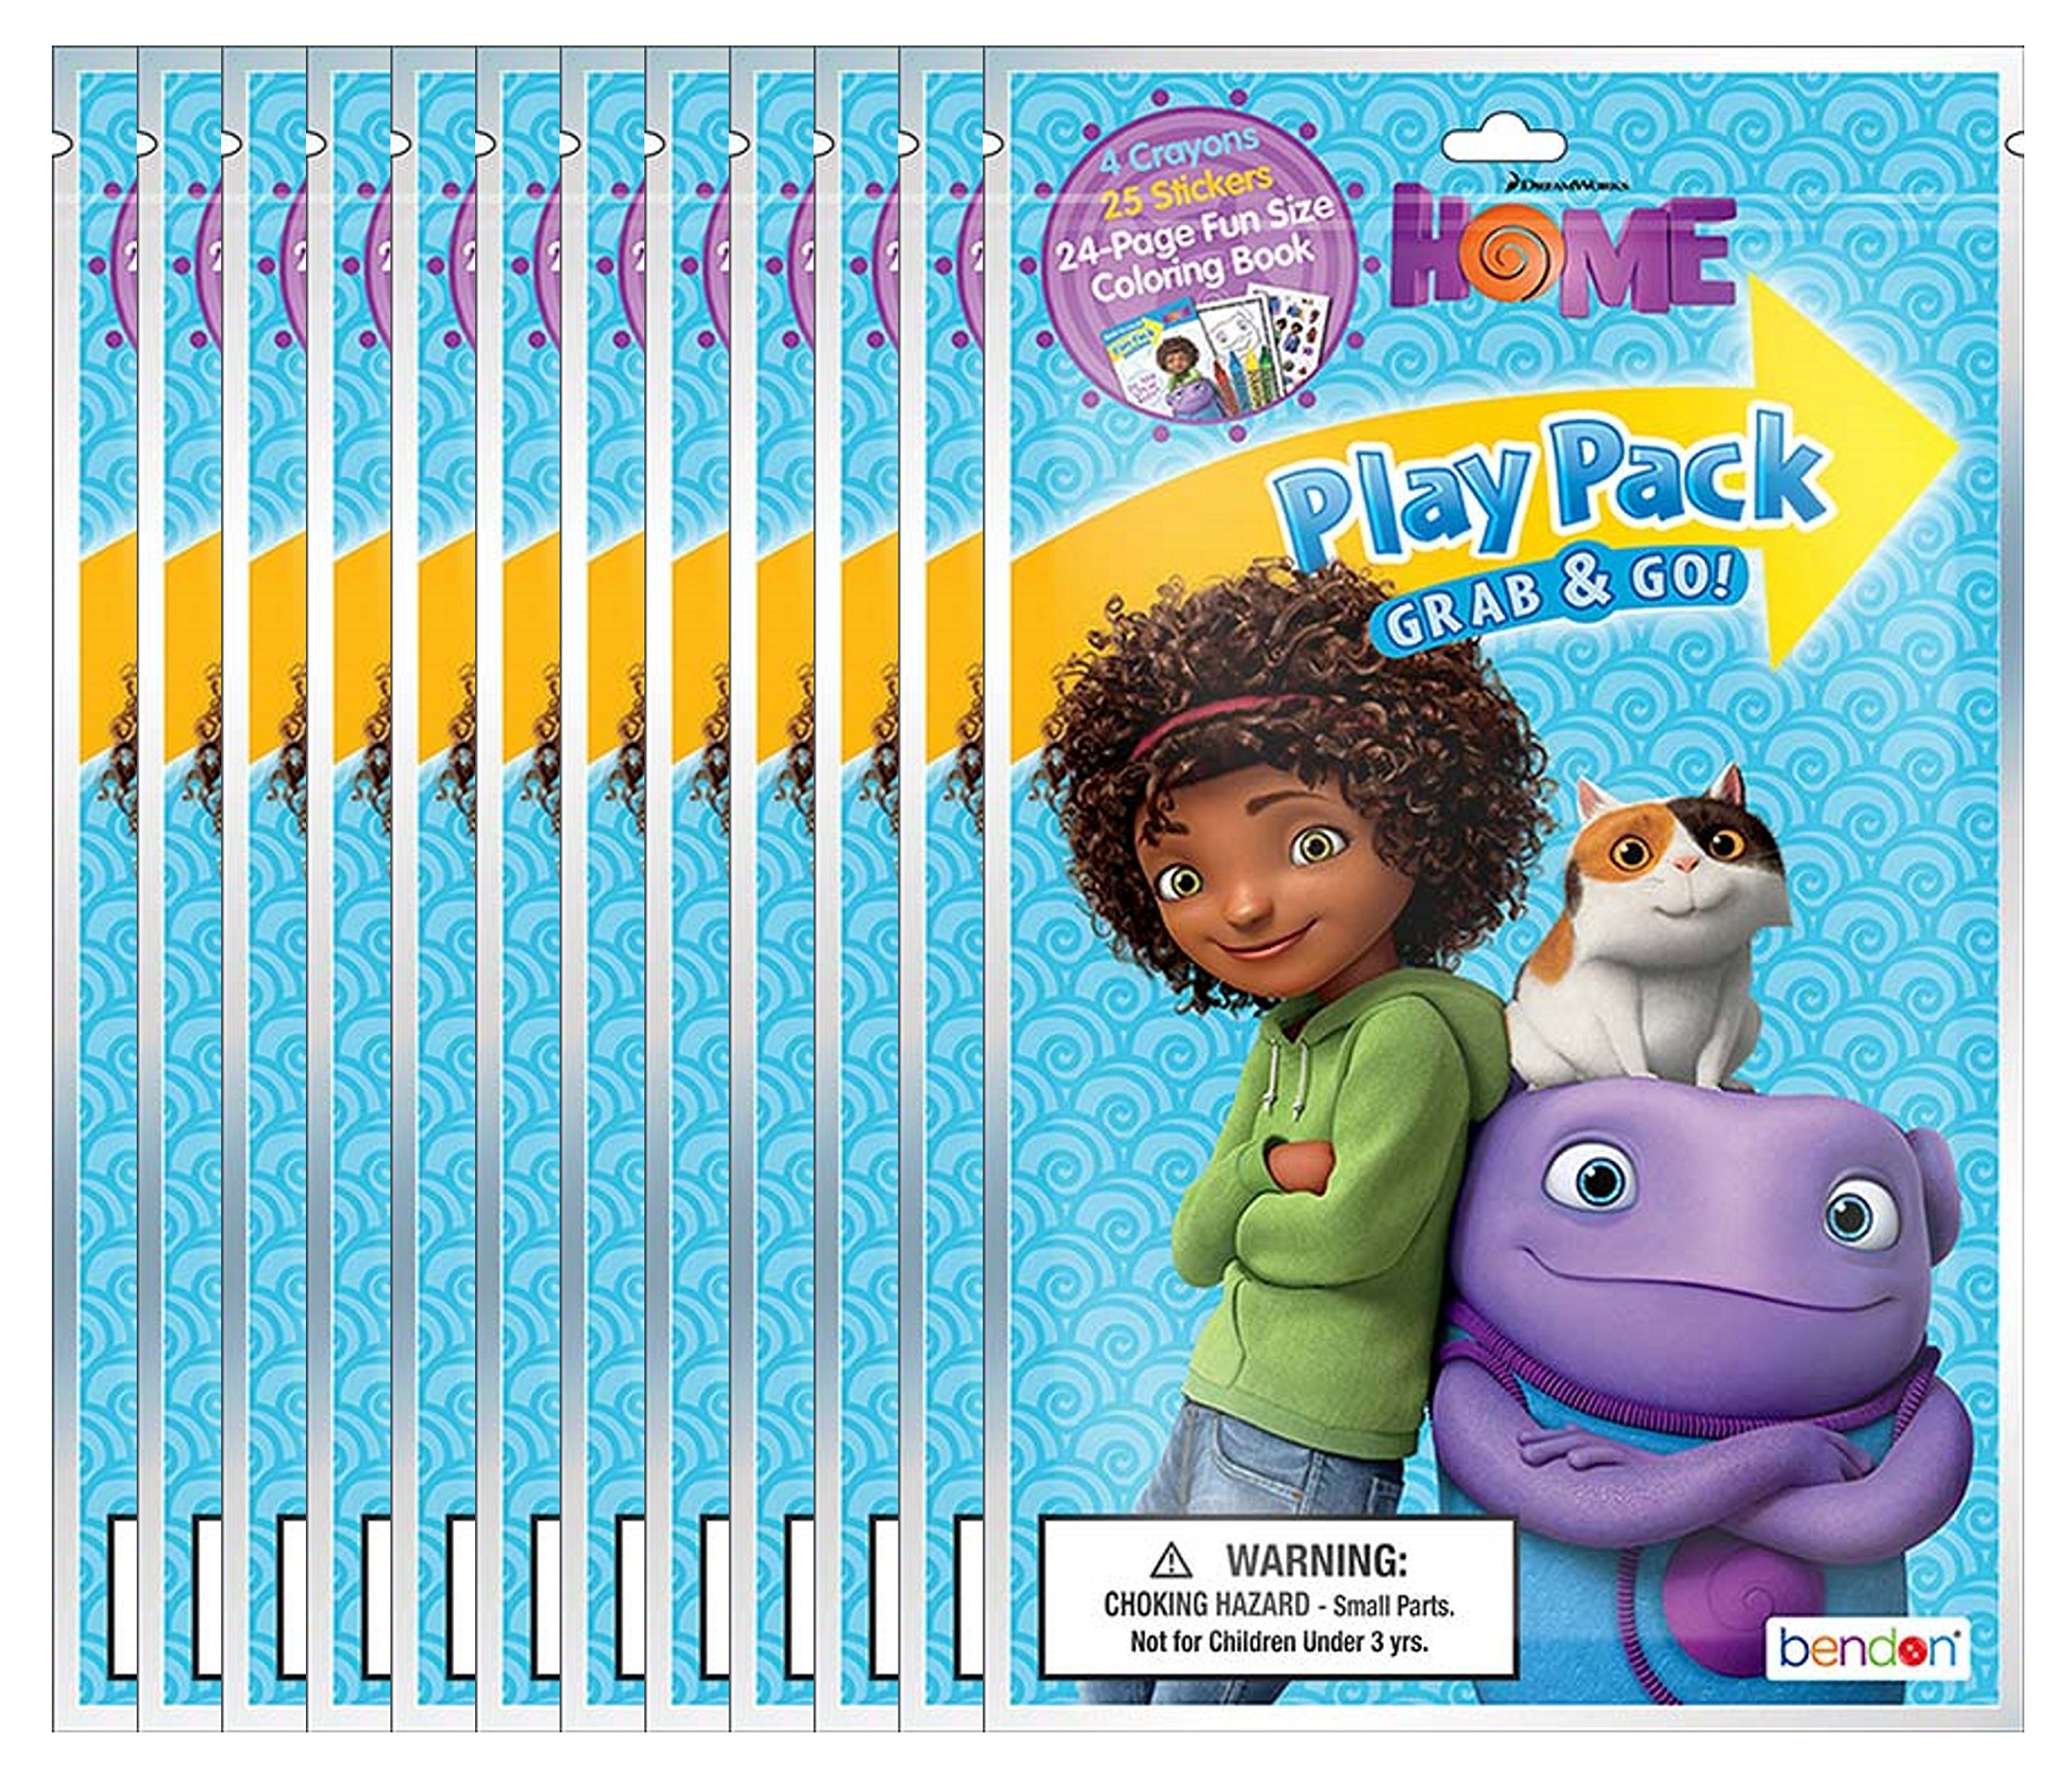 Dreamworks Home Grab and Go Play Packs (Pack of 12)